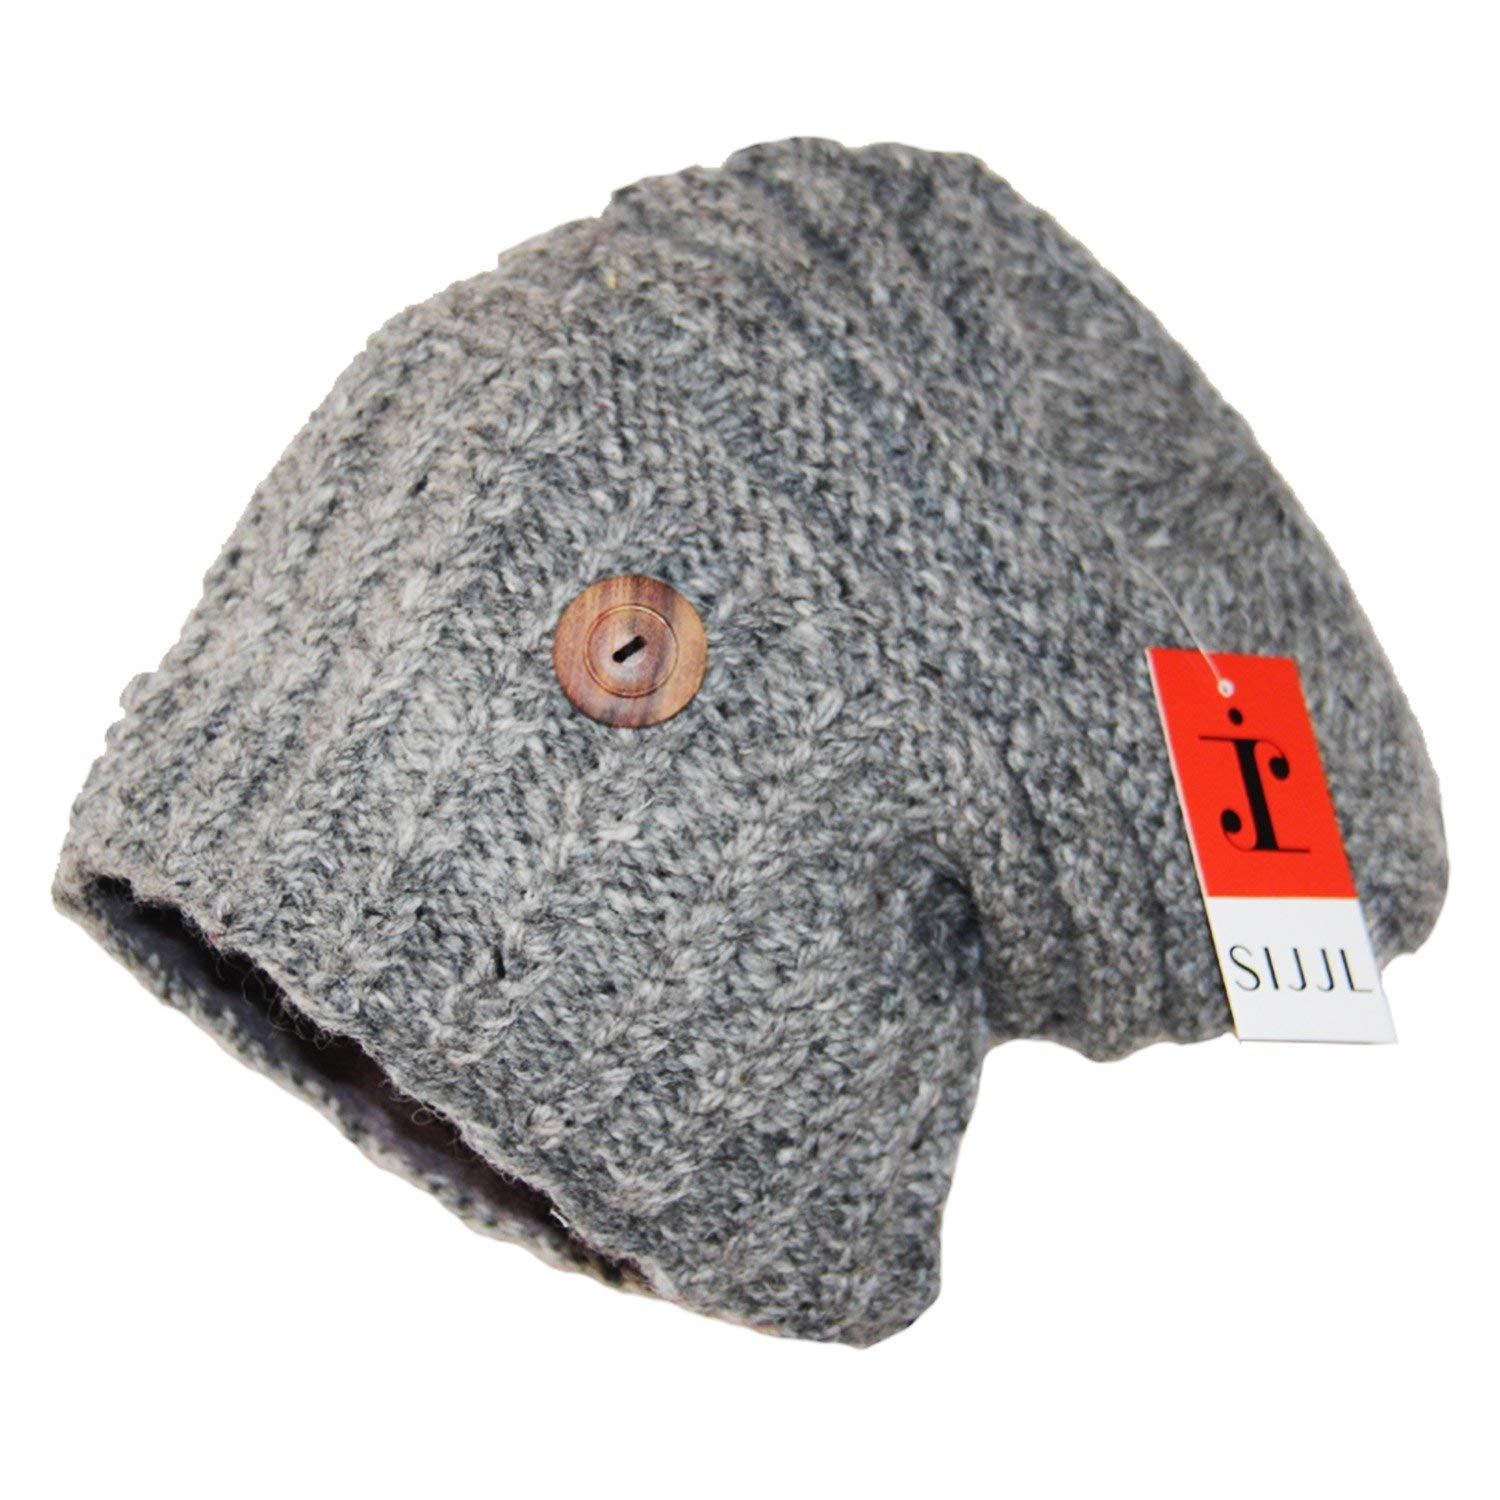 91889bdb02ae5 Get Quotations · SIJJL Grey Side-Button H-Tube Slouchy Beanie